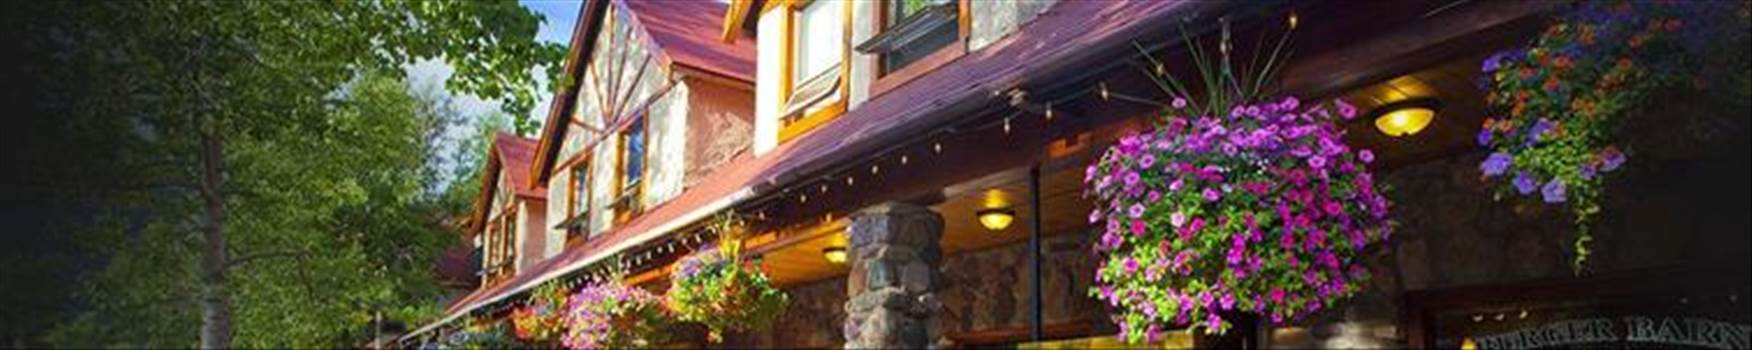 Bayshore Inn Resort and Spa: The Best Hotel in Waterton by BayshoreinnResort